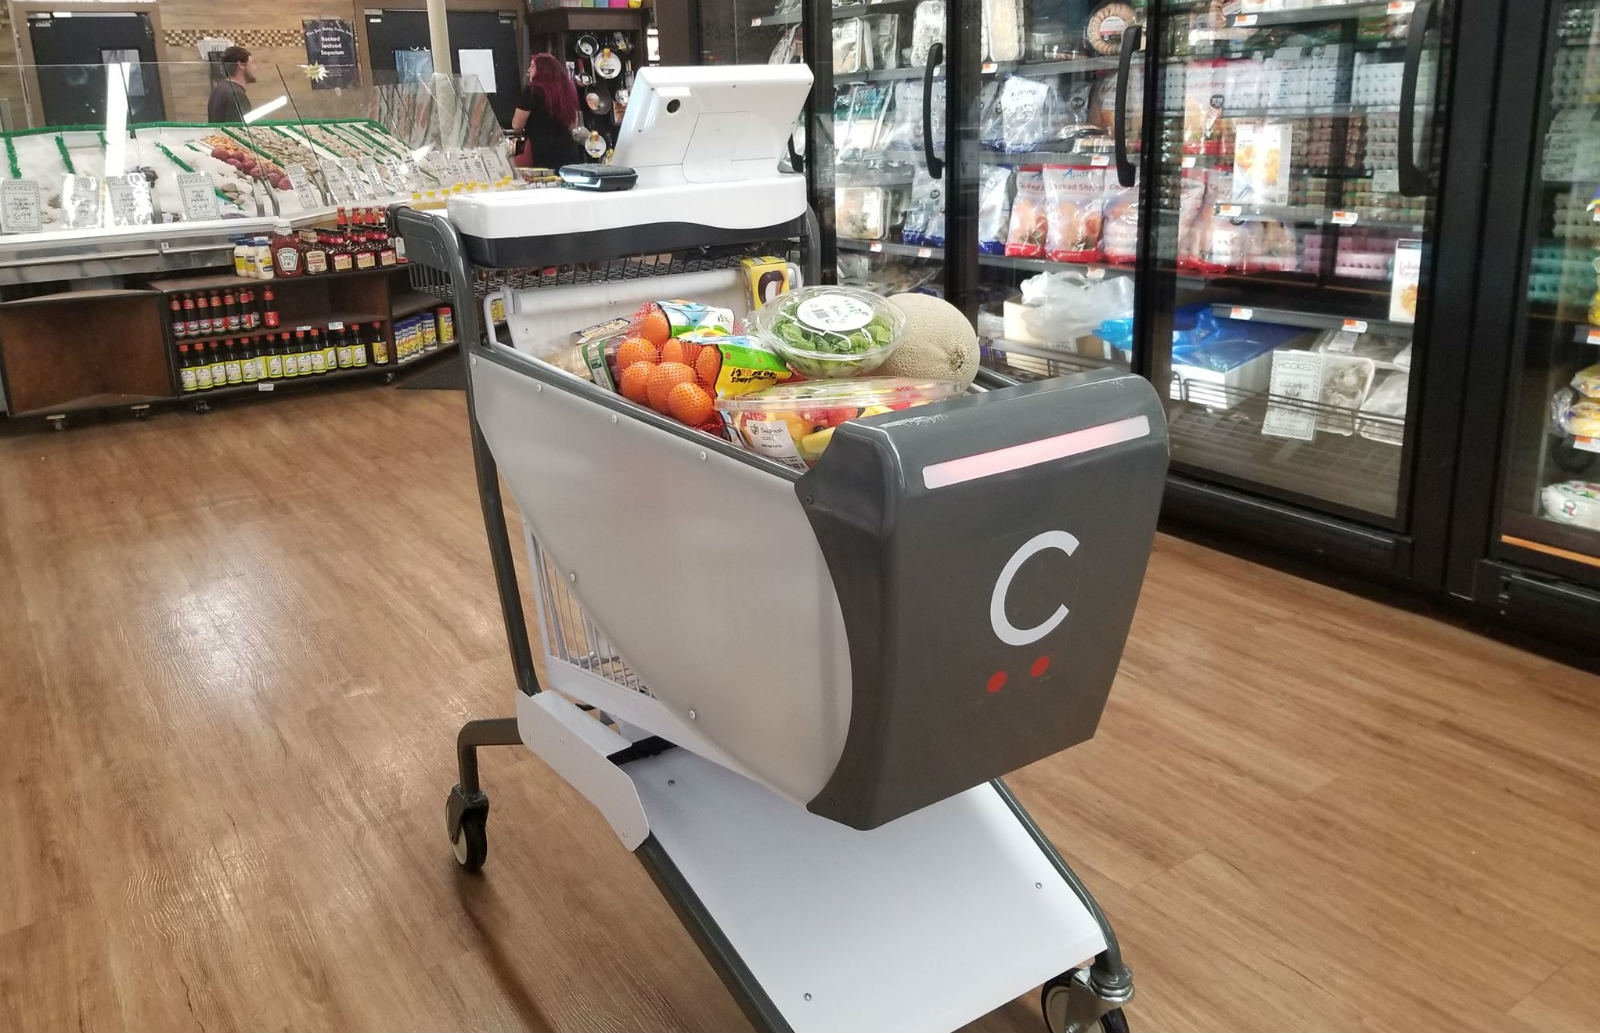 Caper's smart shopping cart uses AI to skip checkout lines | DeviceDaily.com